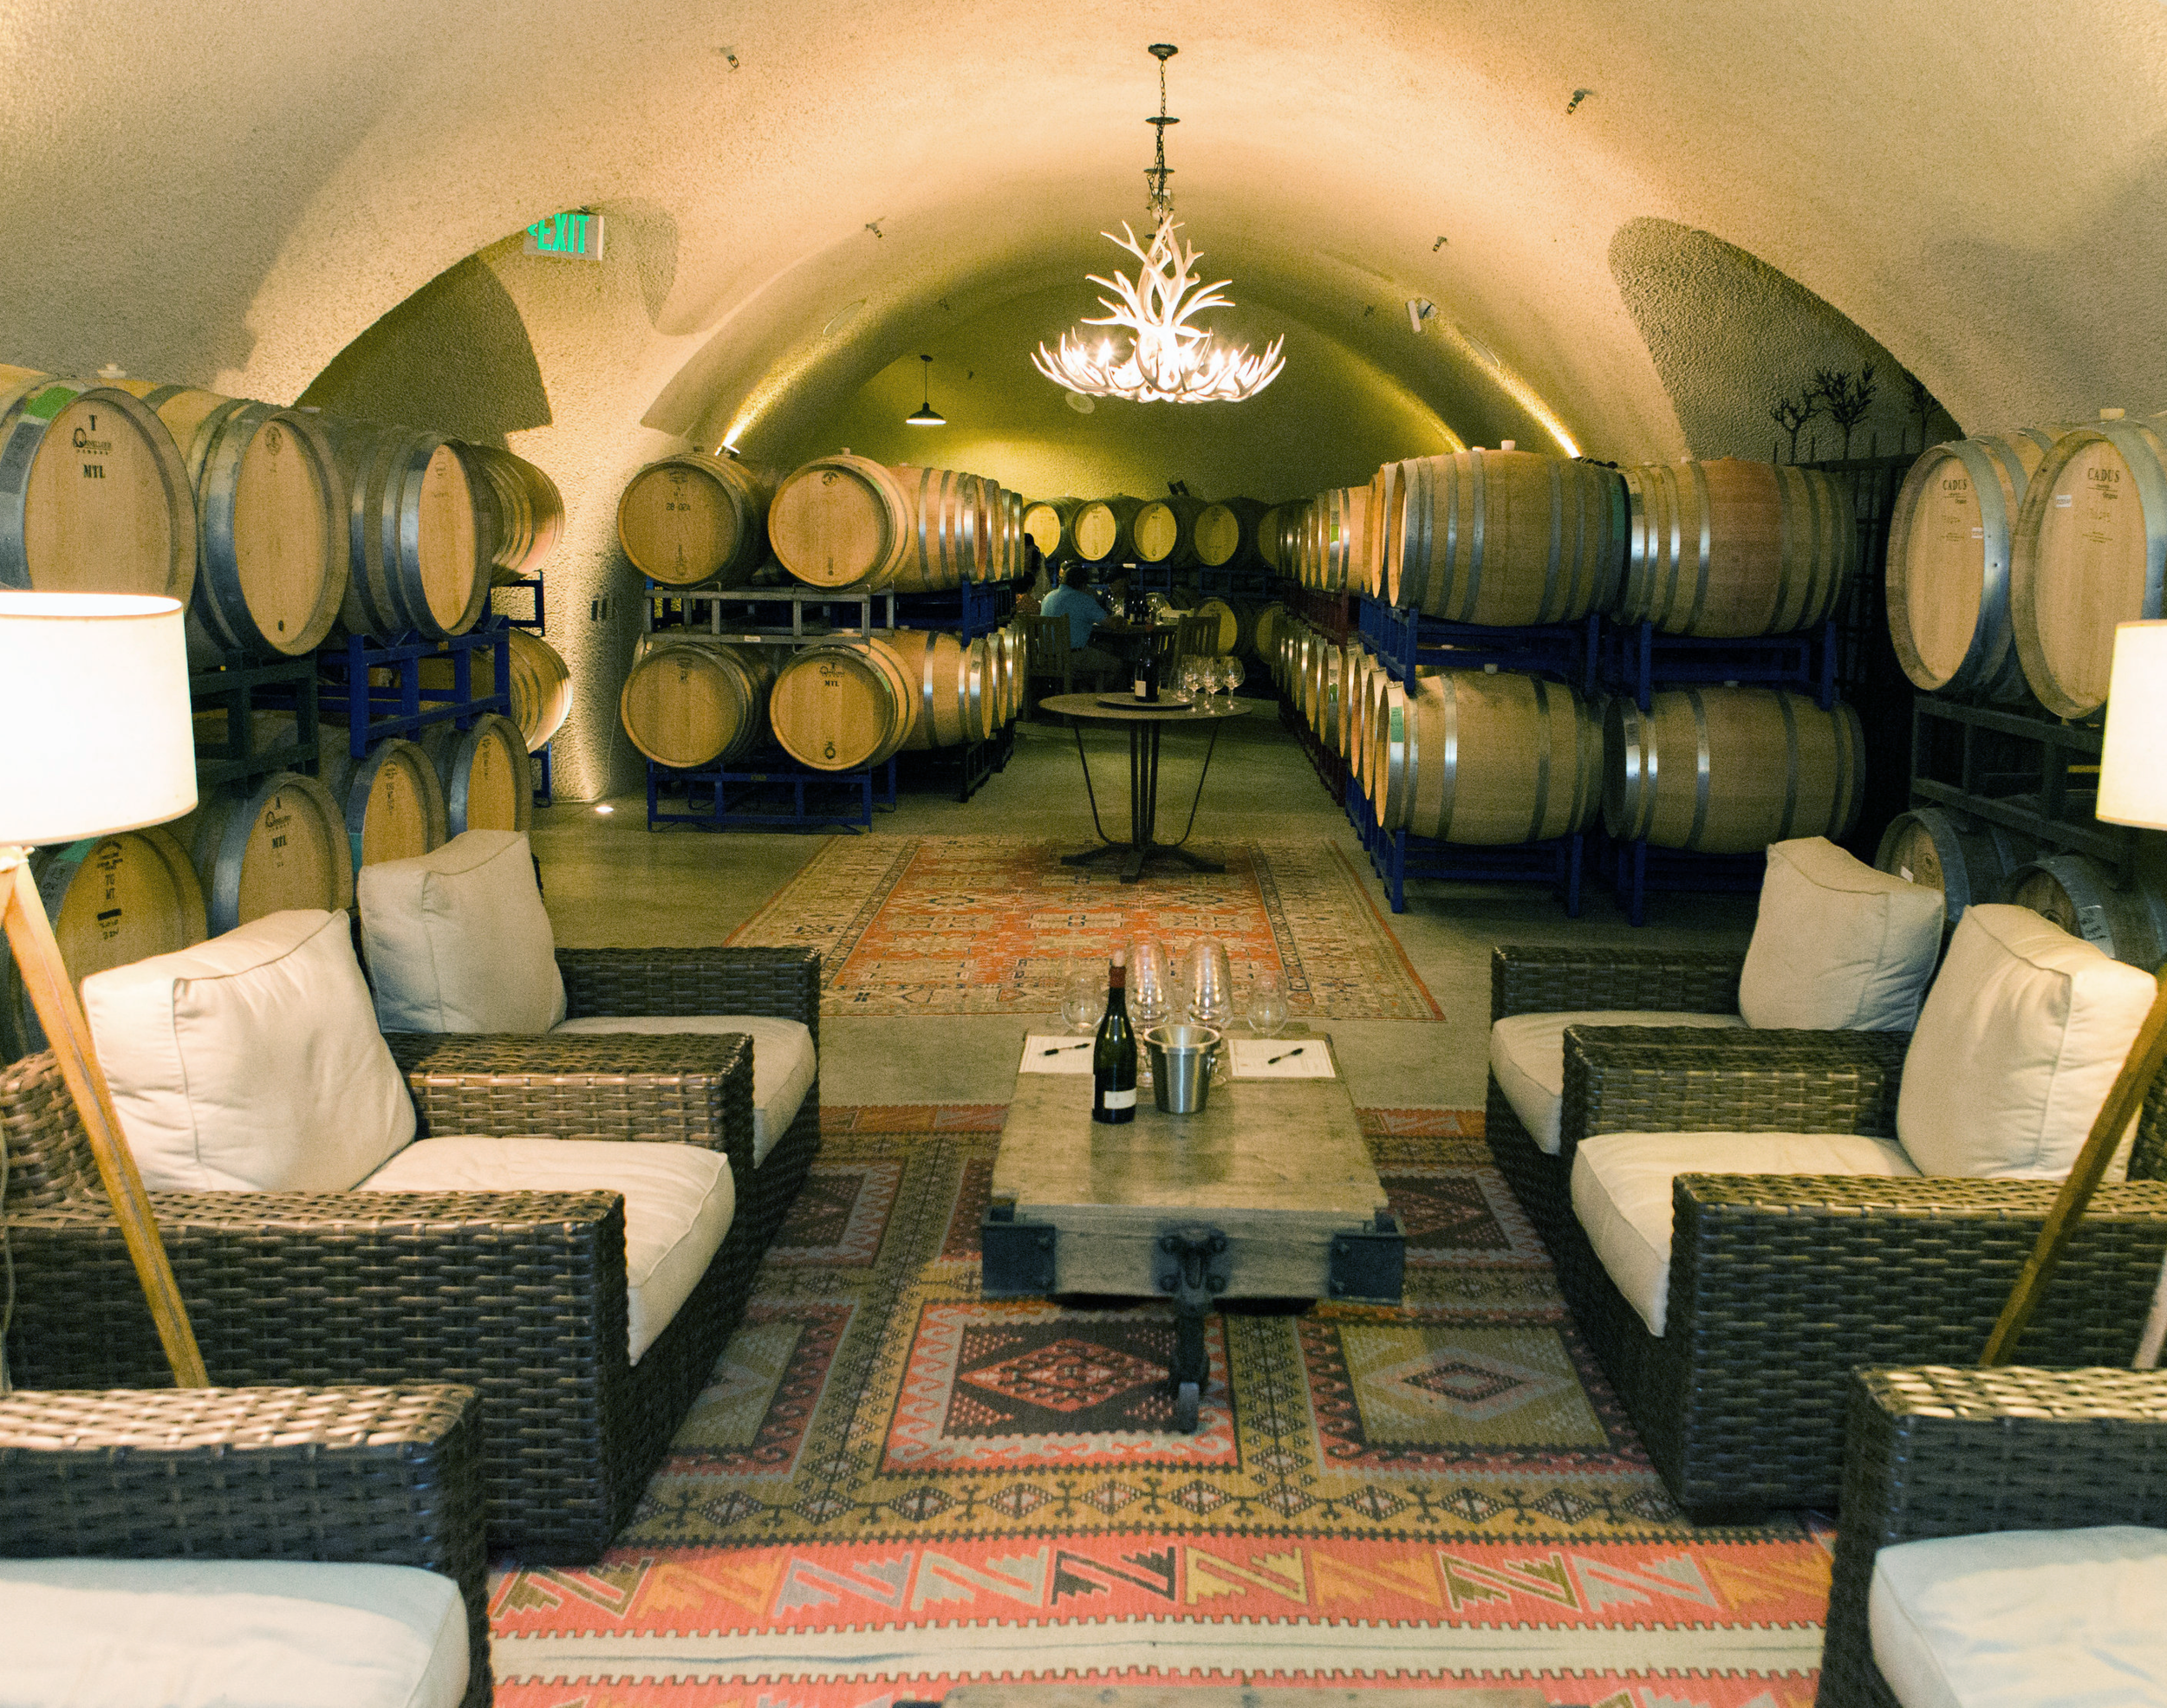 Cave Tours and Barrel Tastings